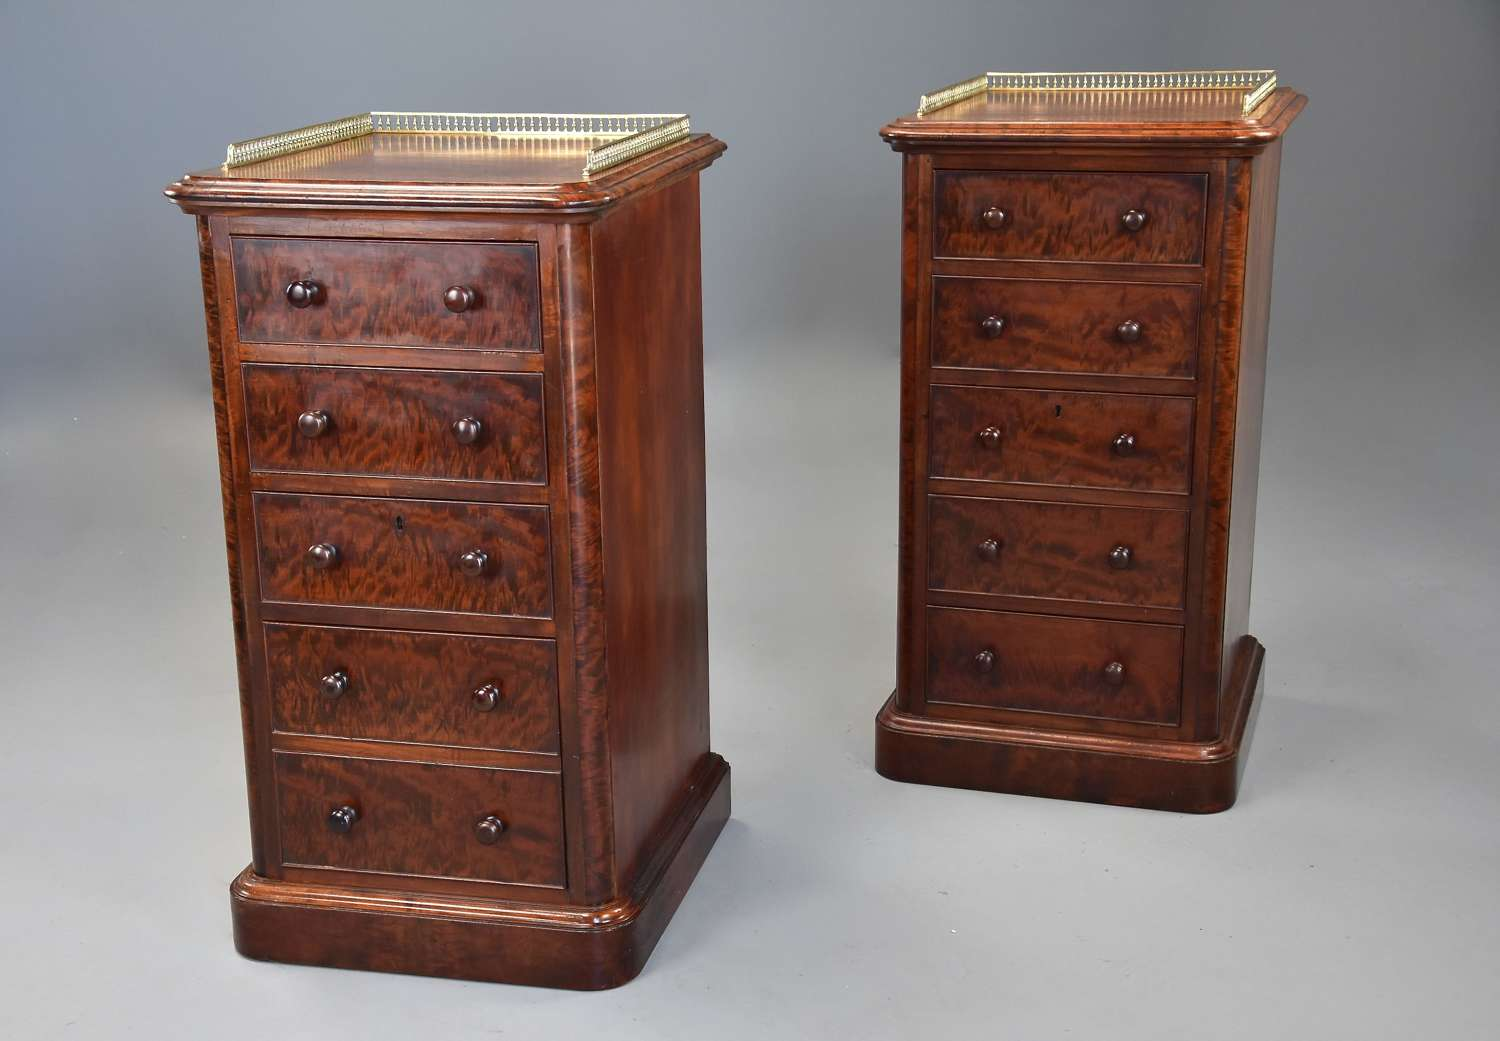 Superb pair of 19thc mahogany bedside chests in the style of Gillows